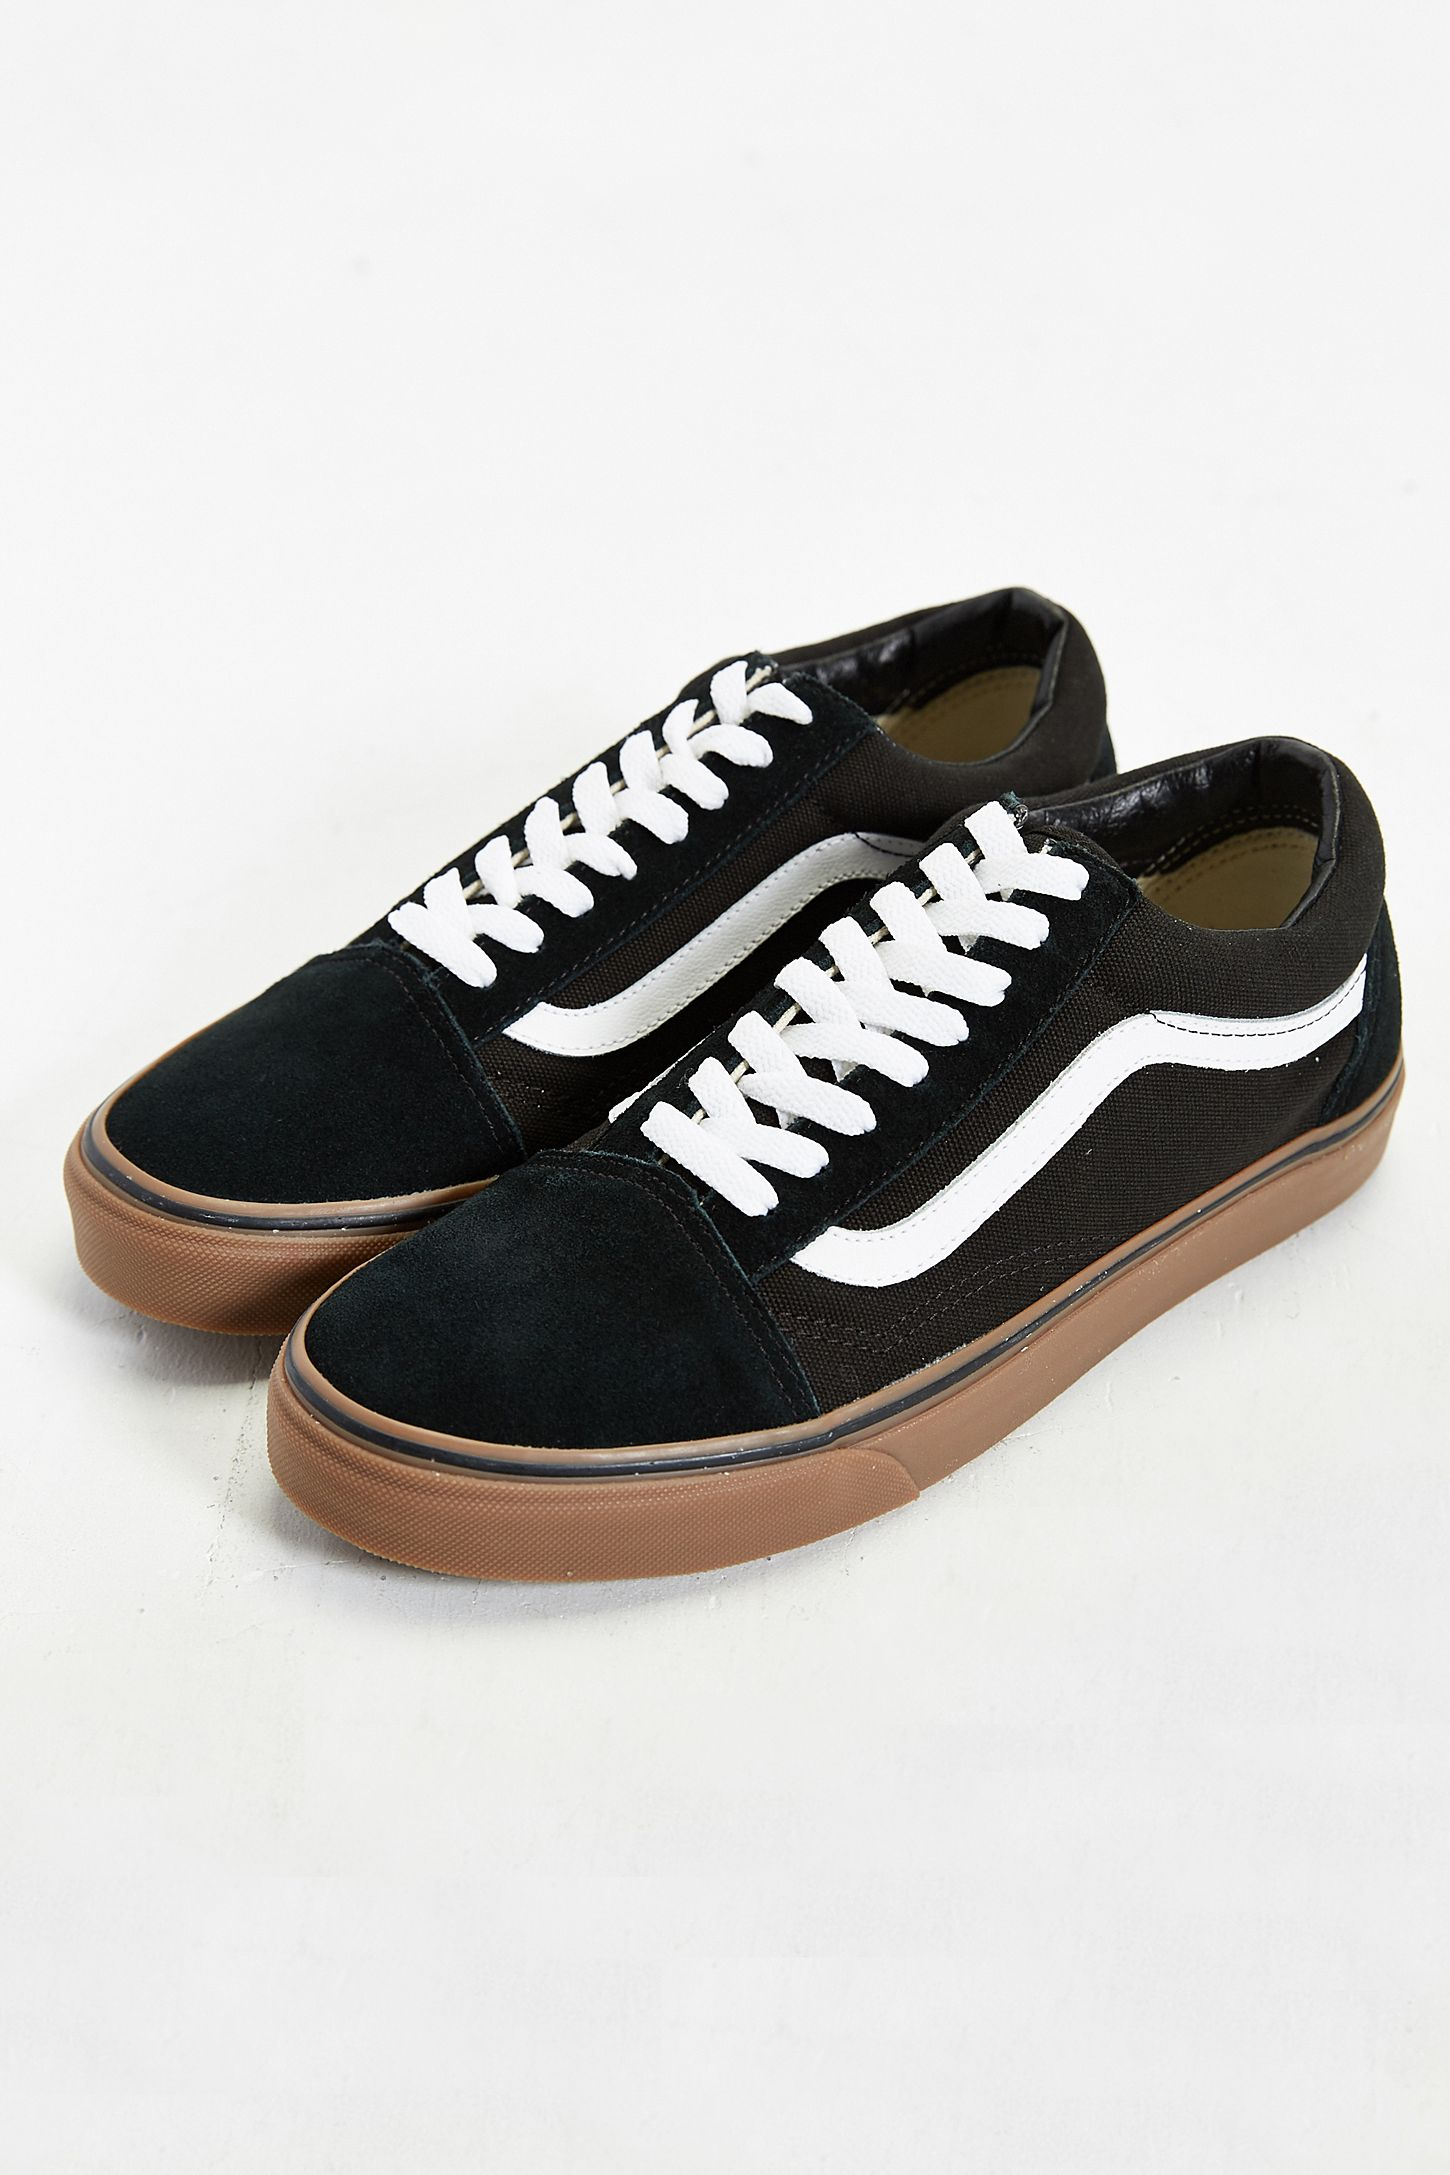 1b72da3927 Vans Old Skool Gum Sole Sneaker. Tap image to zoom. Hover to zoom. Double  Tap to Zoom